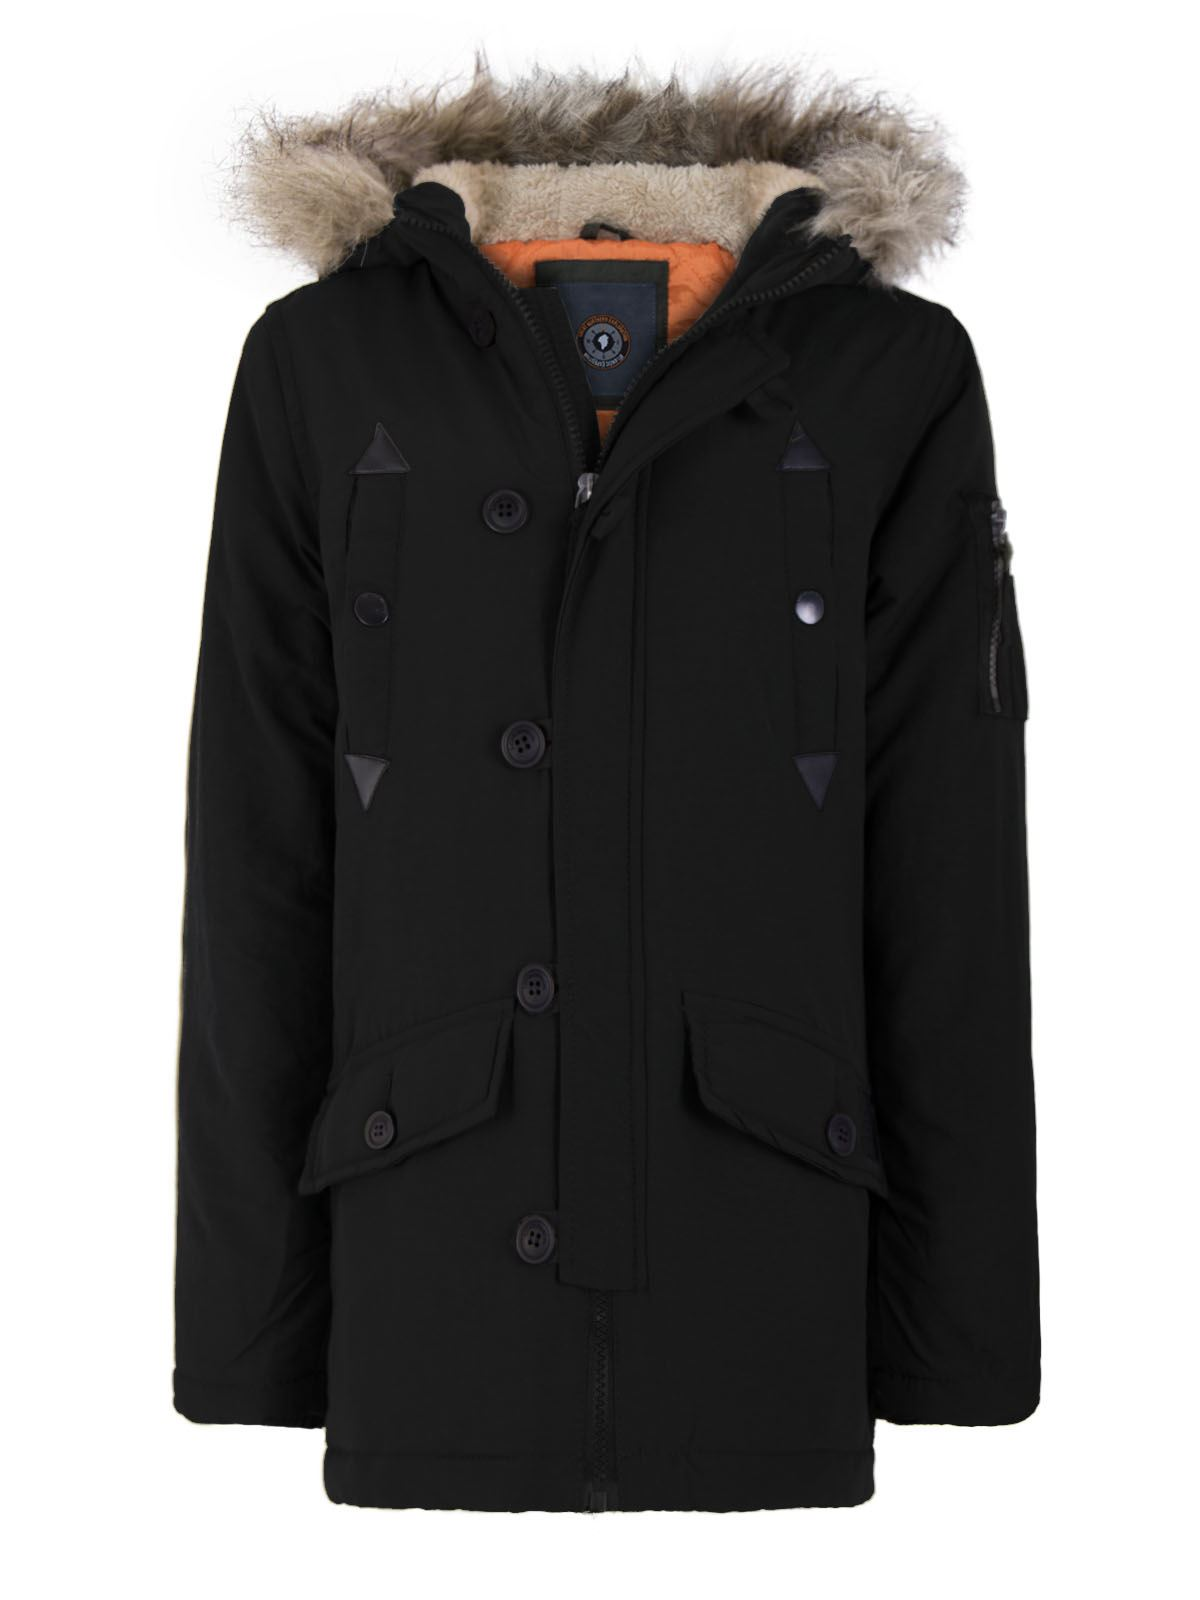 gar ons enfants fausse fourrure veste capuche toile mode militaire manteau parka ebay. Black Bedroom Furniture Sets. Home Design Ideas